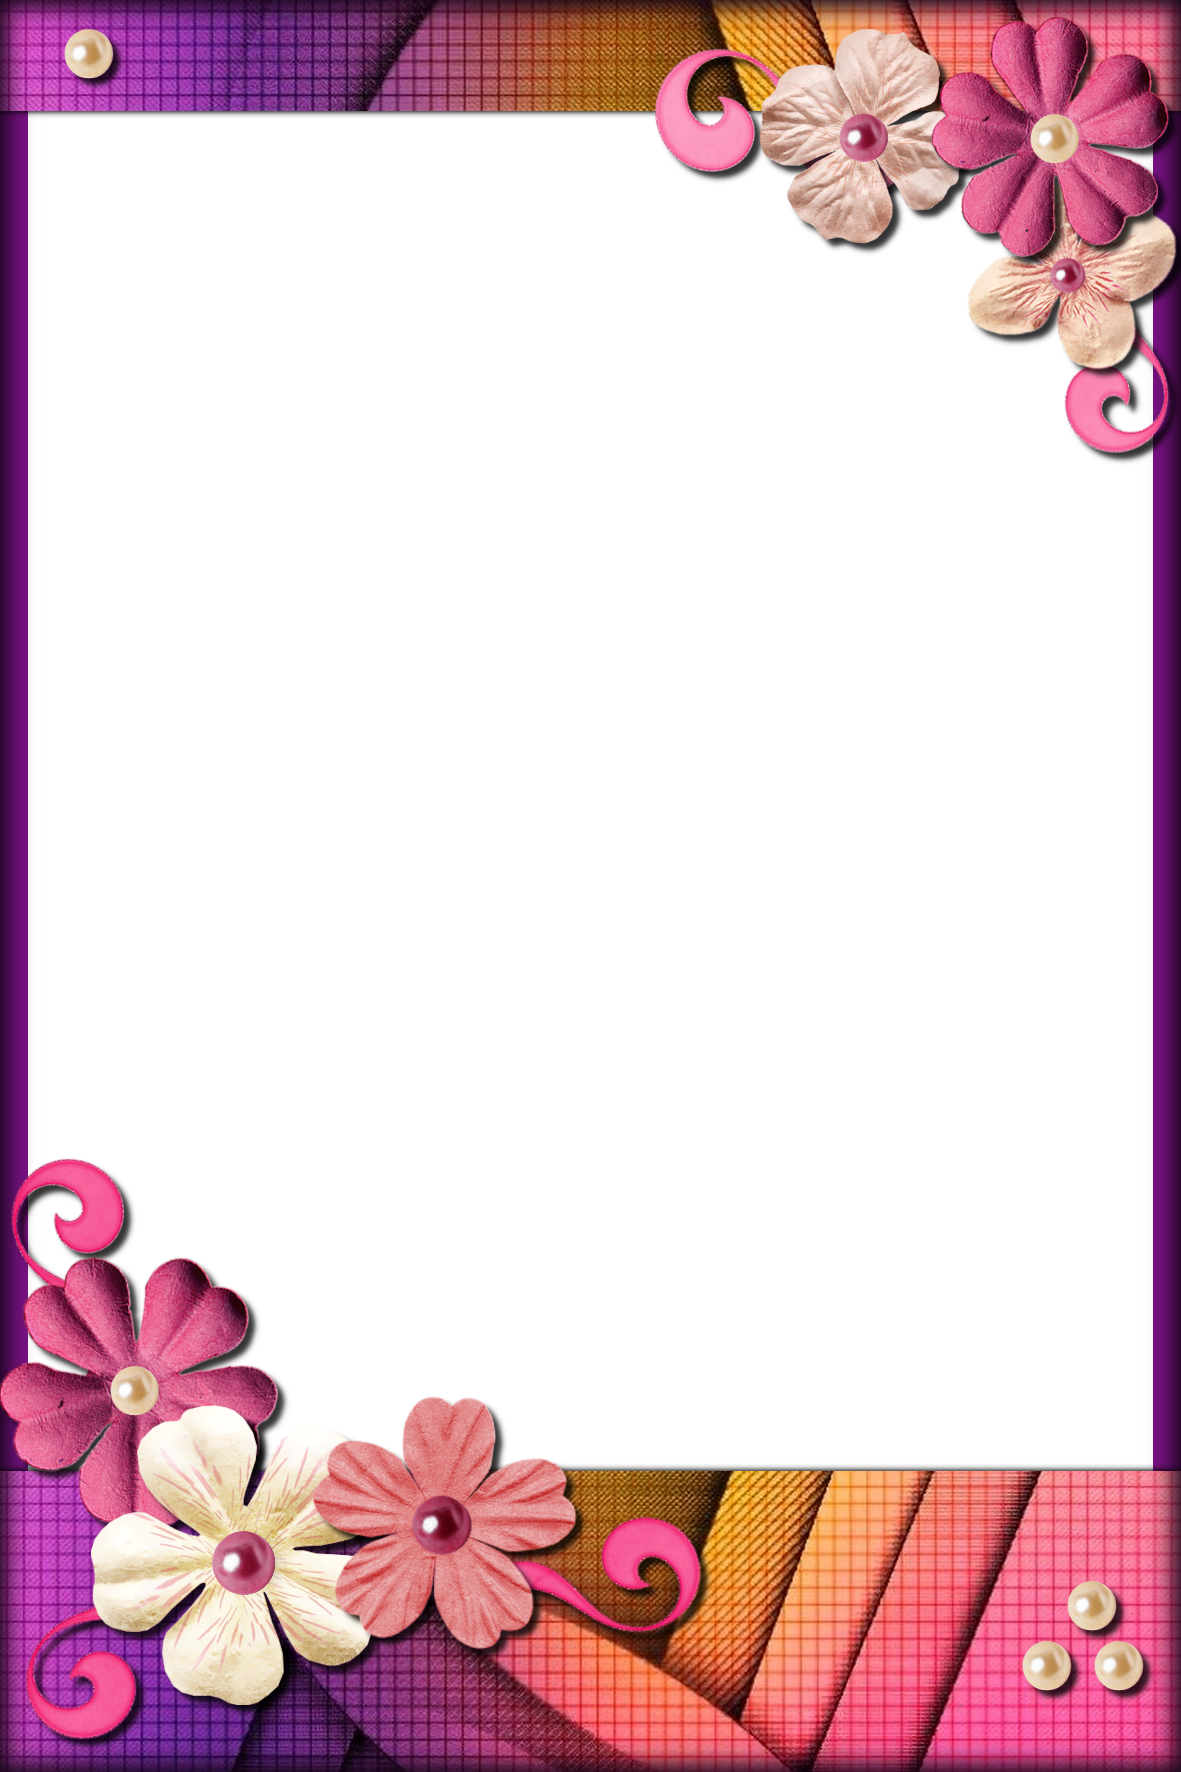 Decorative Frame Png Flower Background Design Boarders And Frames Frame Decor